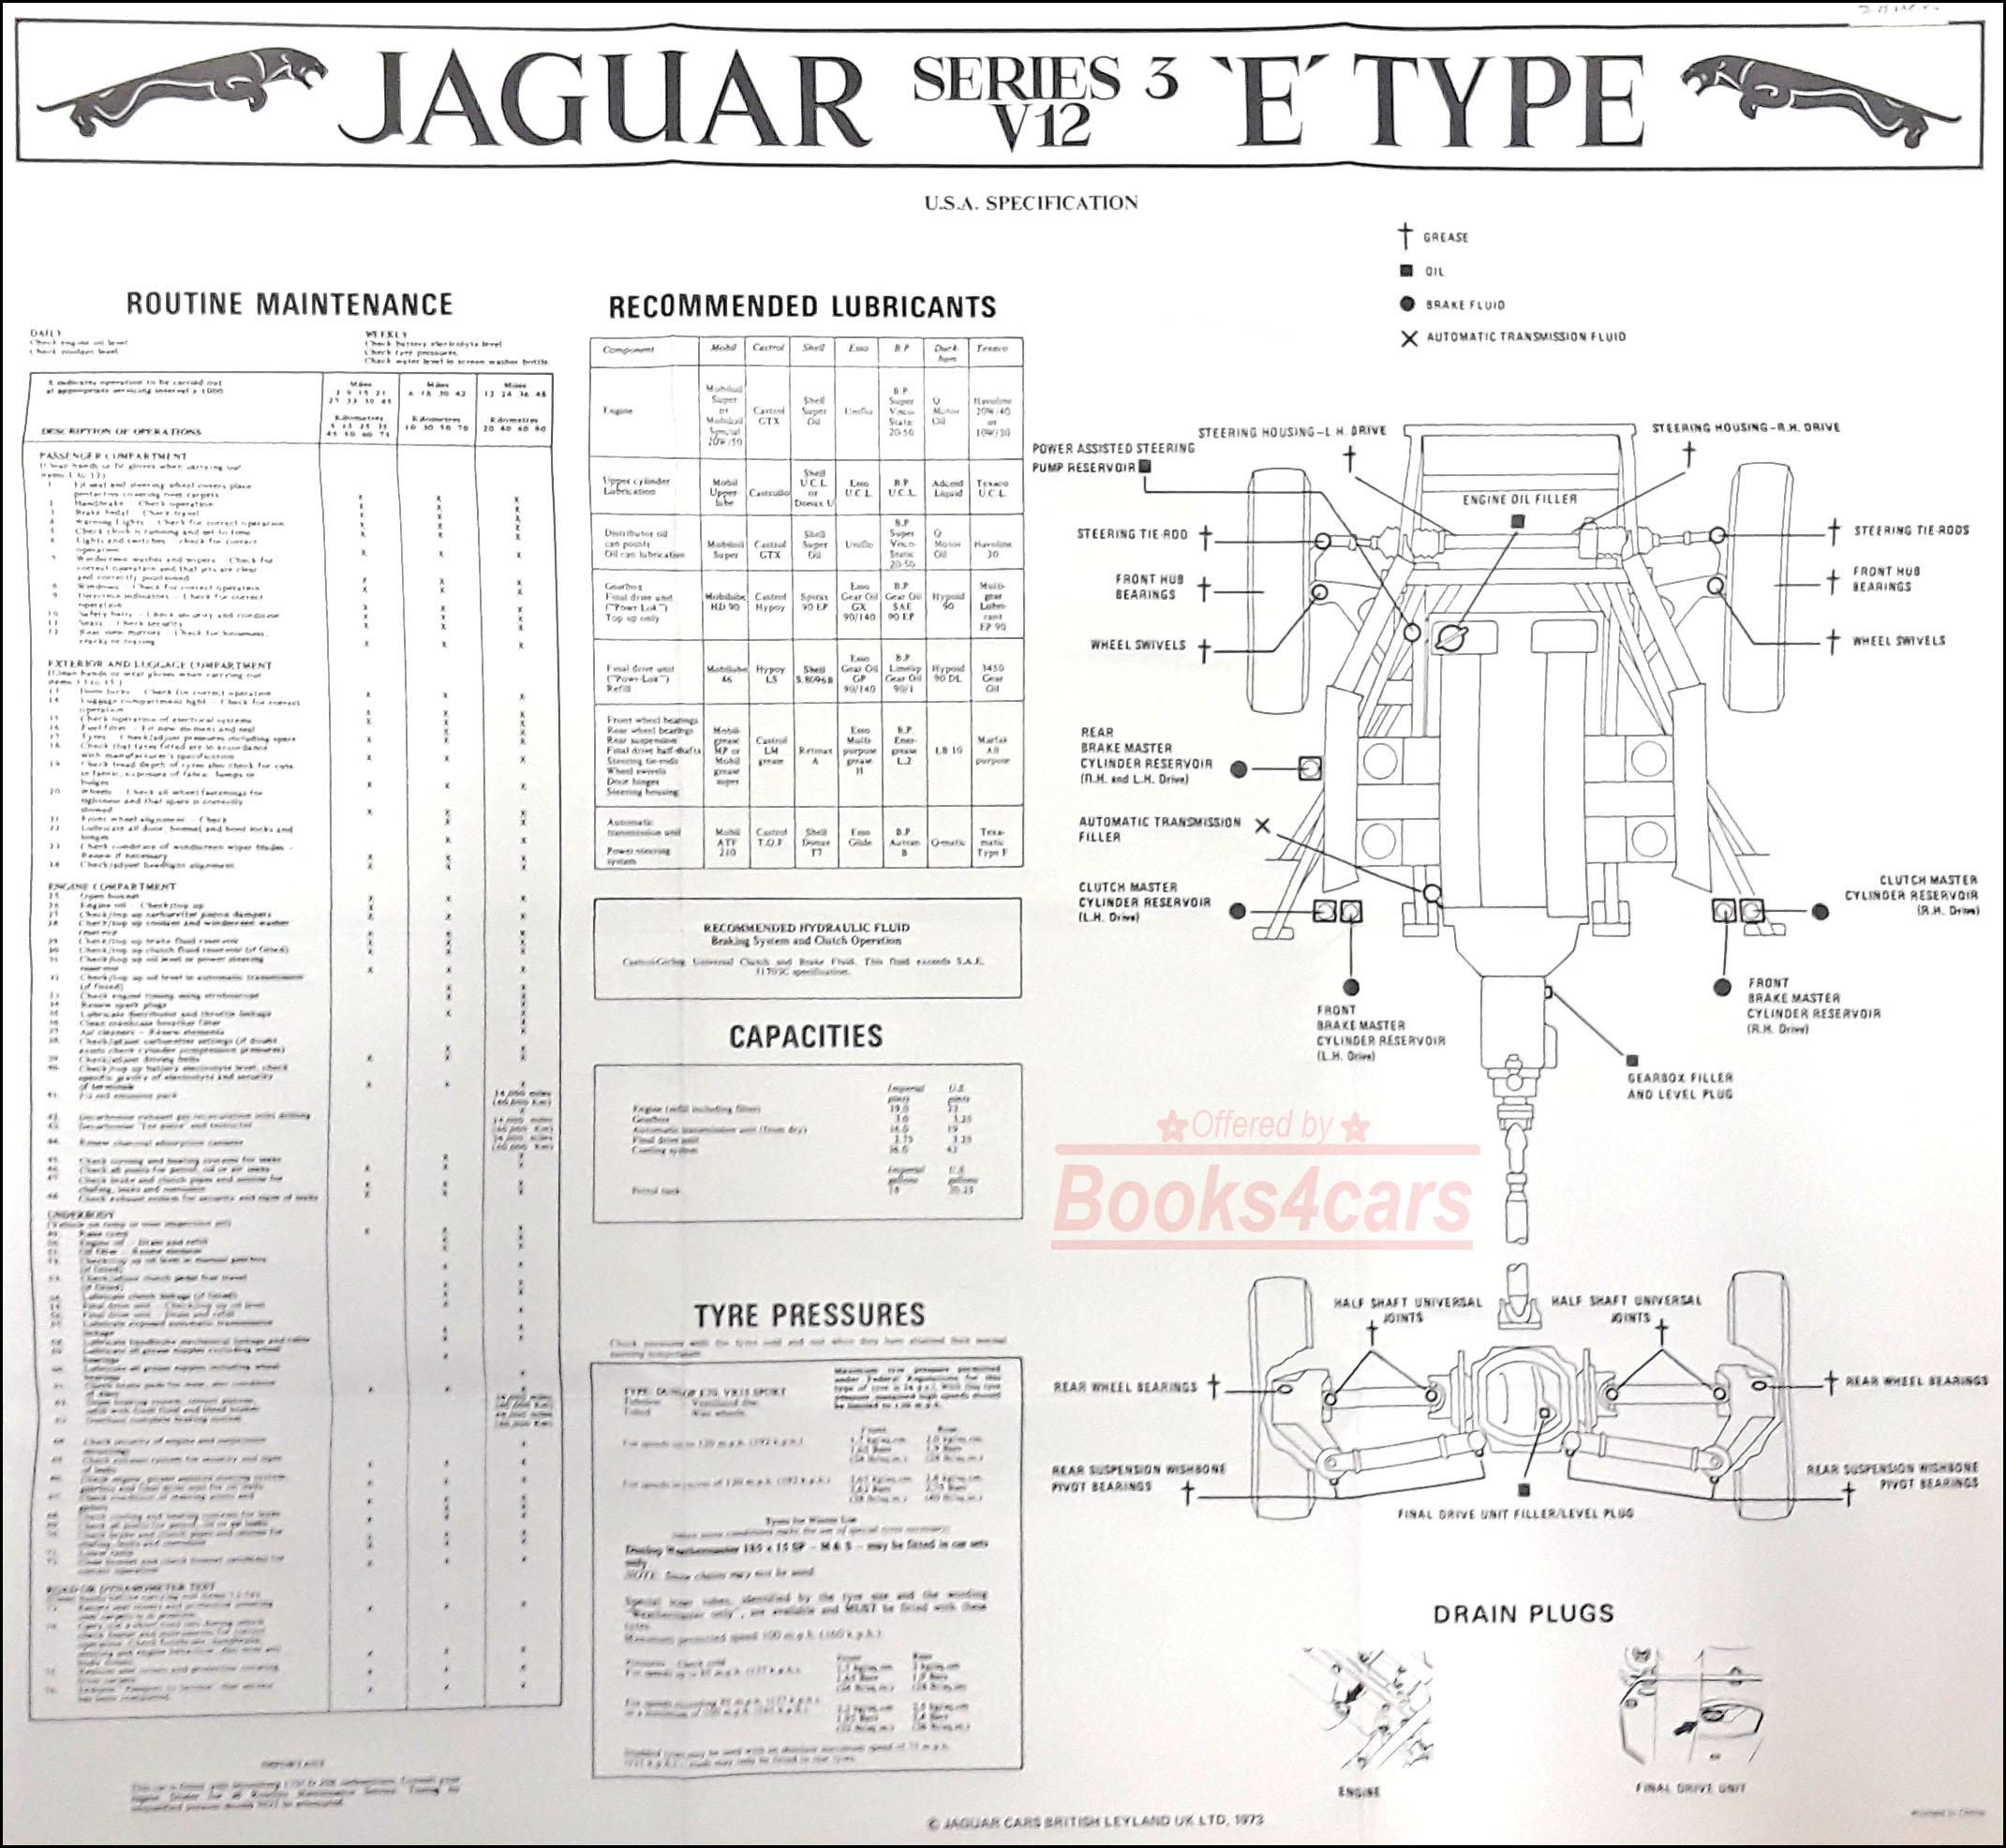 1975 Jaguar 4 2 Wiring Diagram Reveolution Of Mini Cooper Speakers Maintenance Xke E Type Electrical V12 S3 1971 Ebay Rh Com Fender Bass Old Guitar